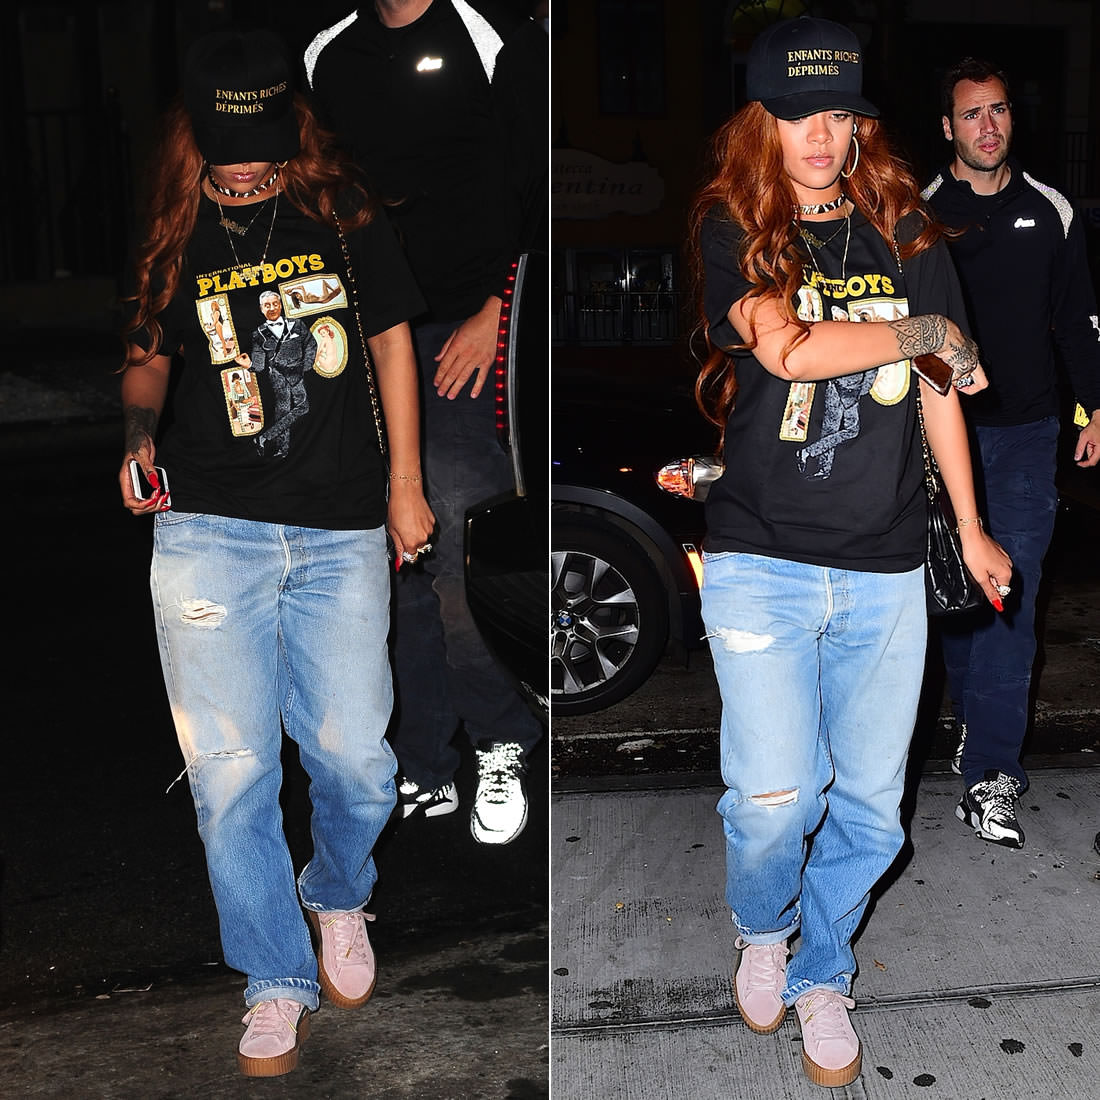 Rihanna Enfants Riches Deprimes snapback hat, Eli Reed international playboy t-shirt, Levi's distressed jeans, Puma x Mr Completely pink creeper shoes